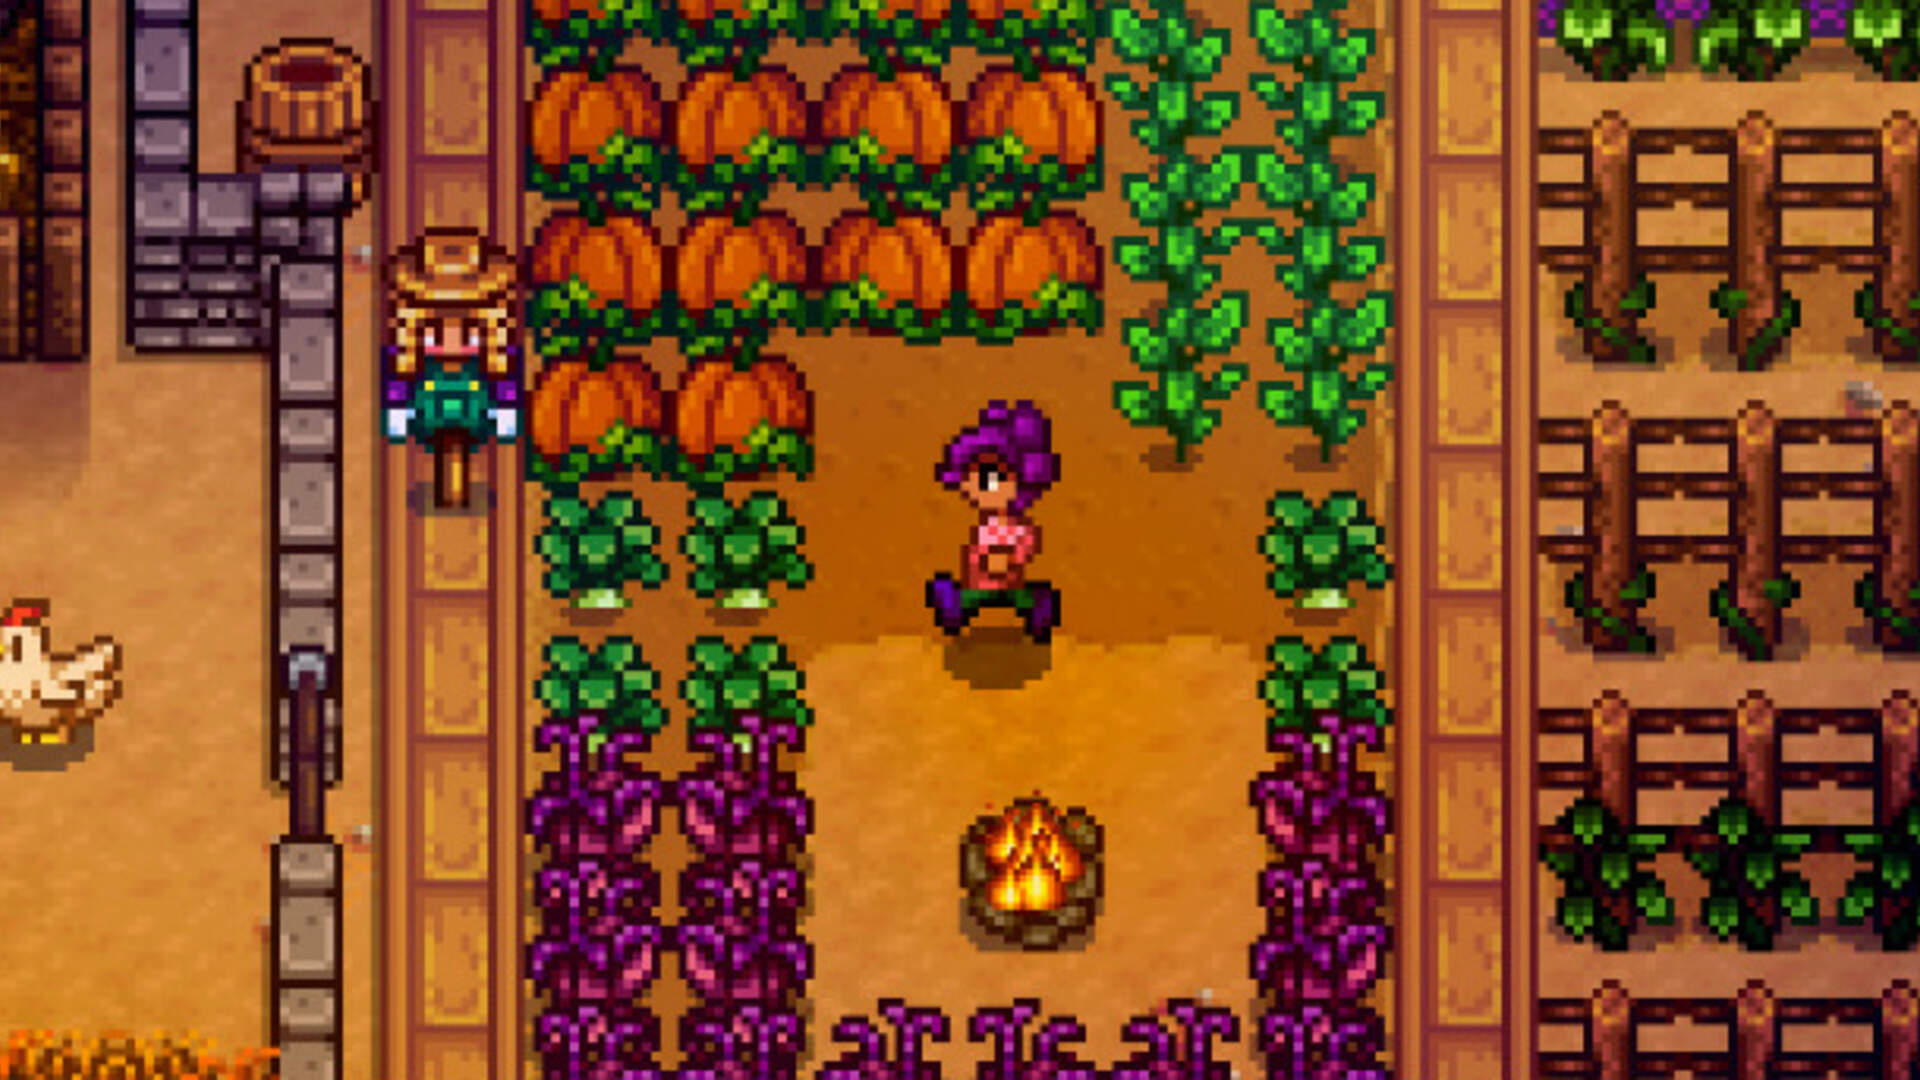 Stardew Valley is Coming to iOS Later This Month With No In-App Purchases